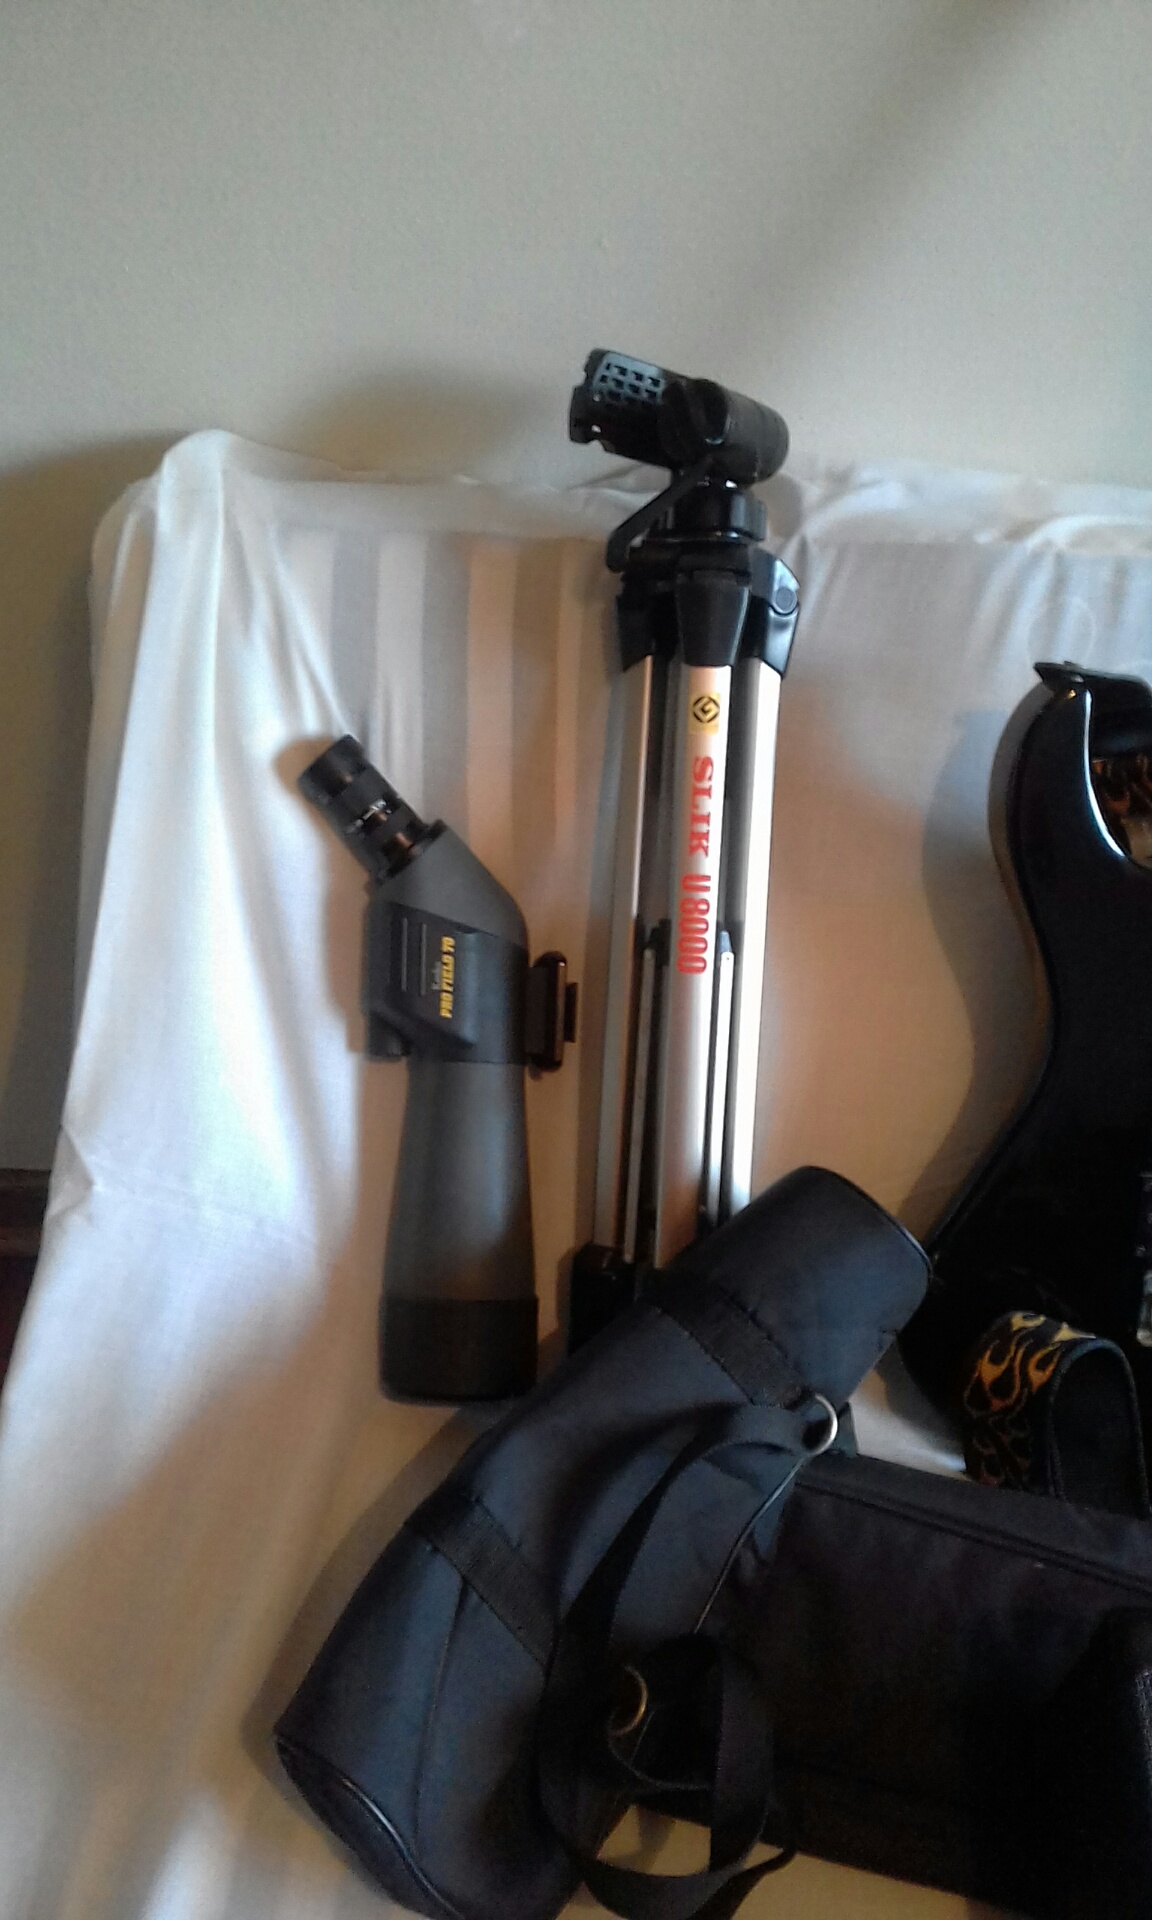 Kenko Pro Field spotting scope + Silk U8000 tripod